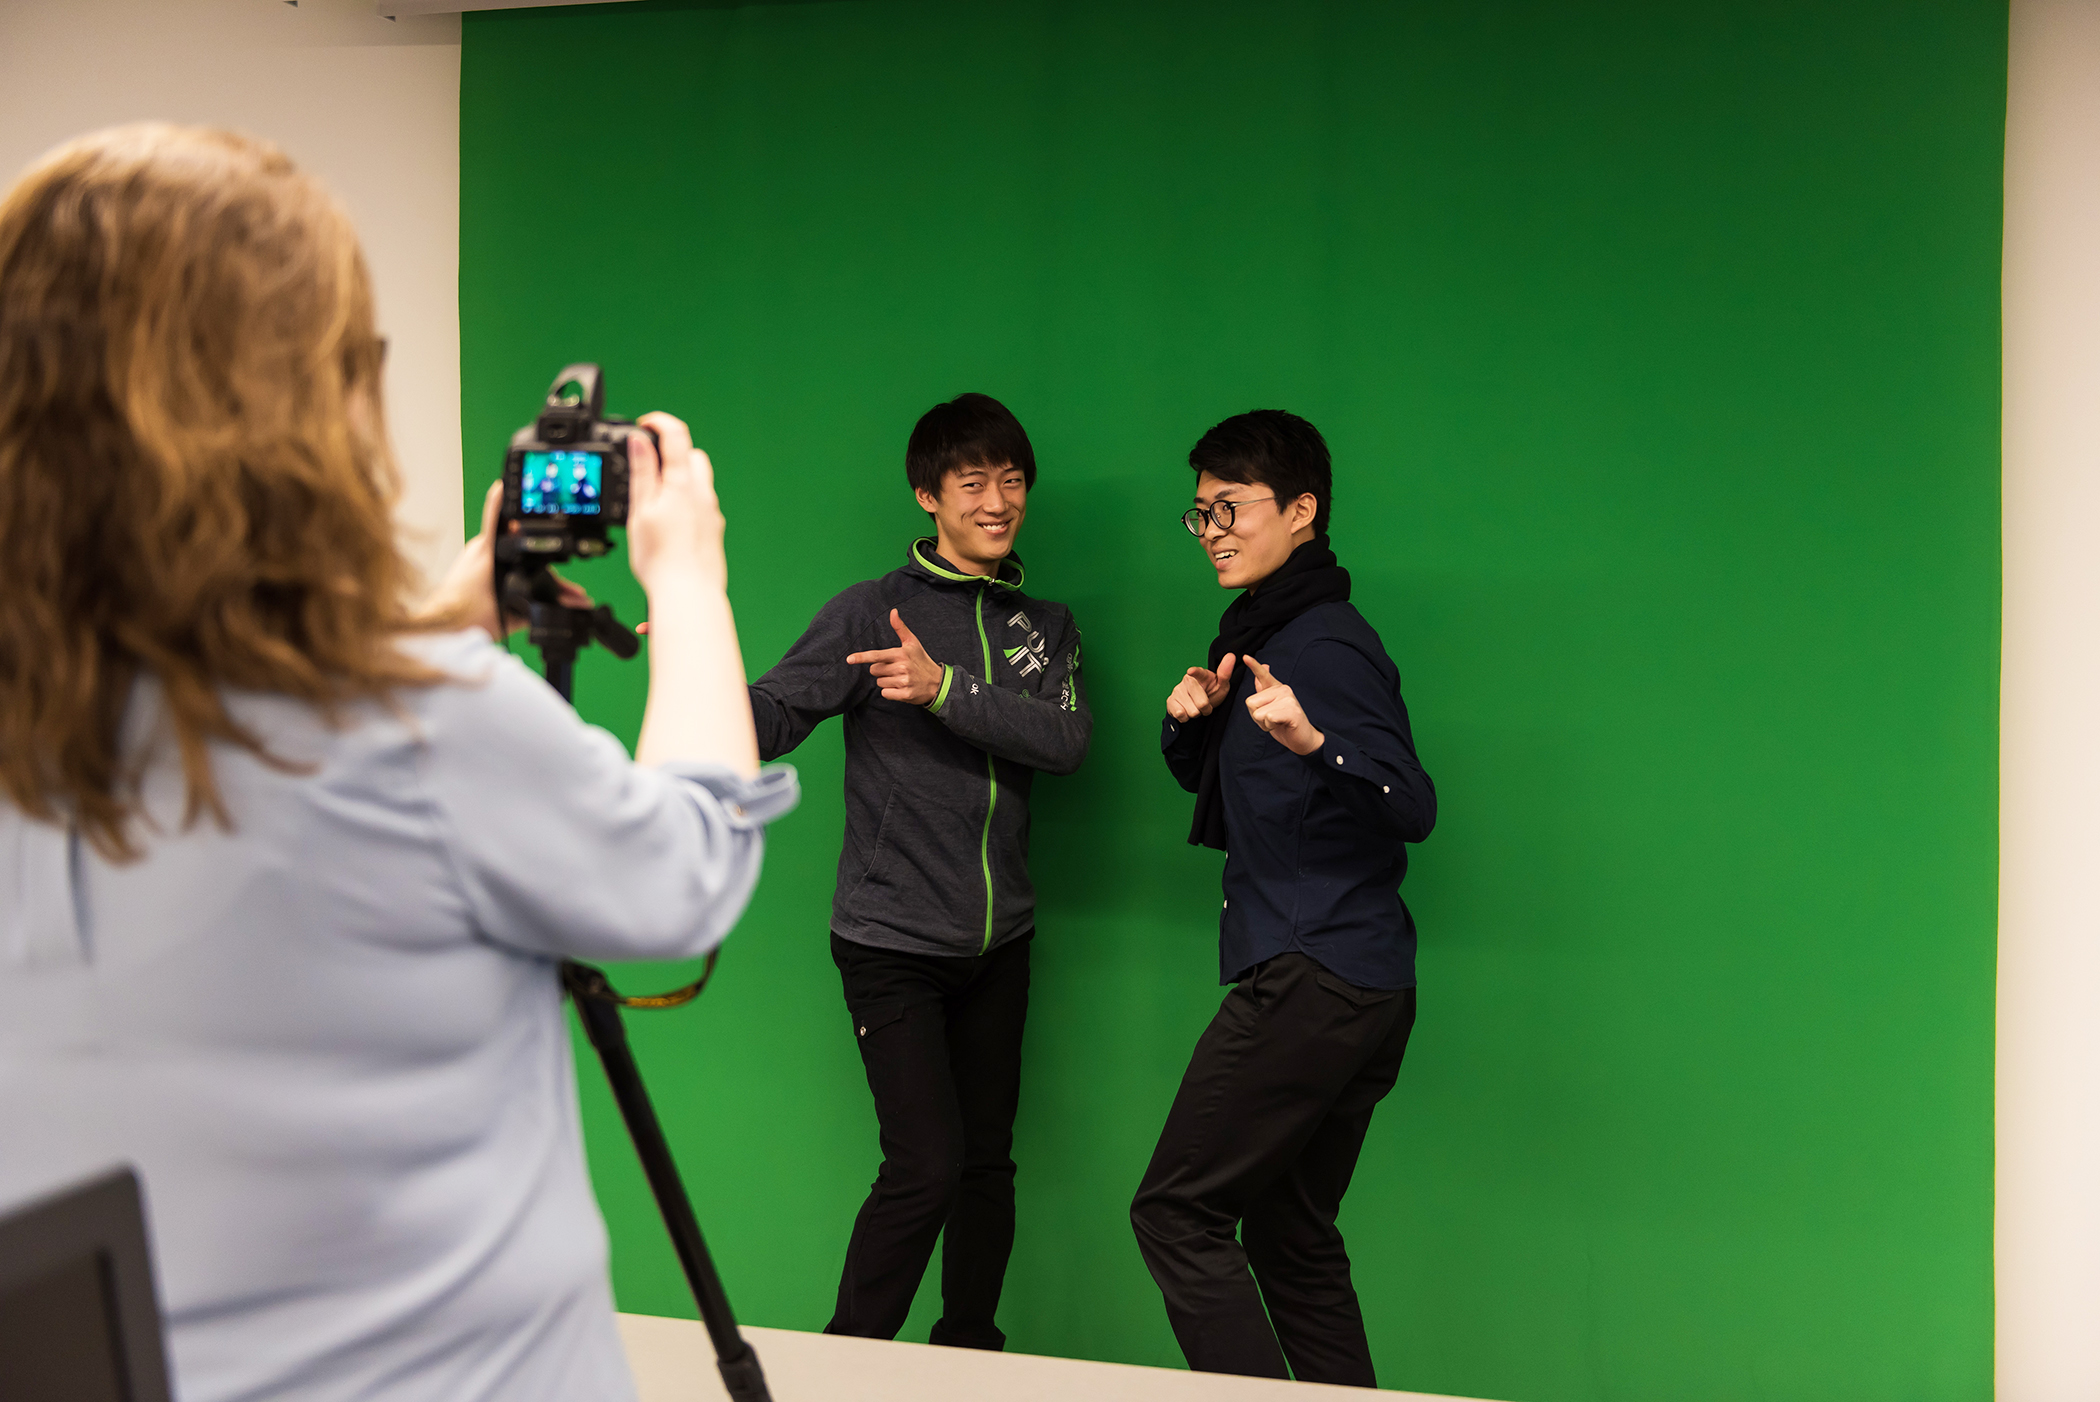 patrons using a green screen in The Lab